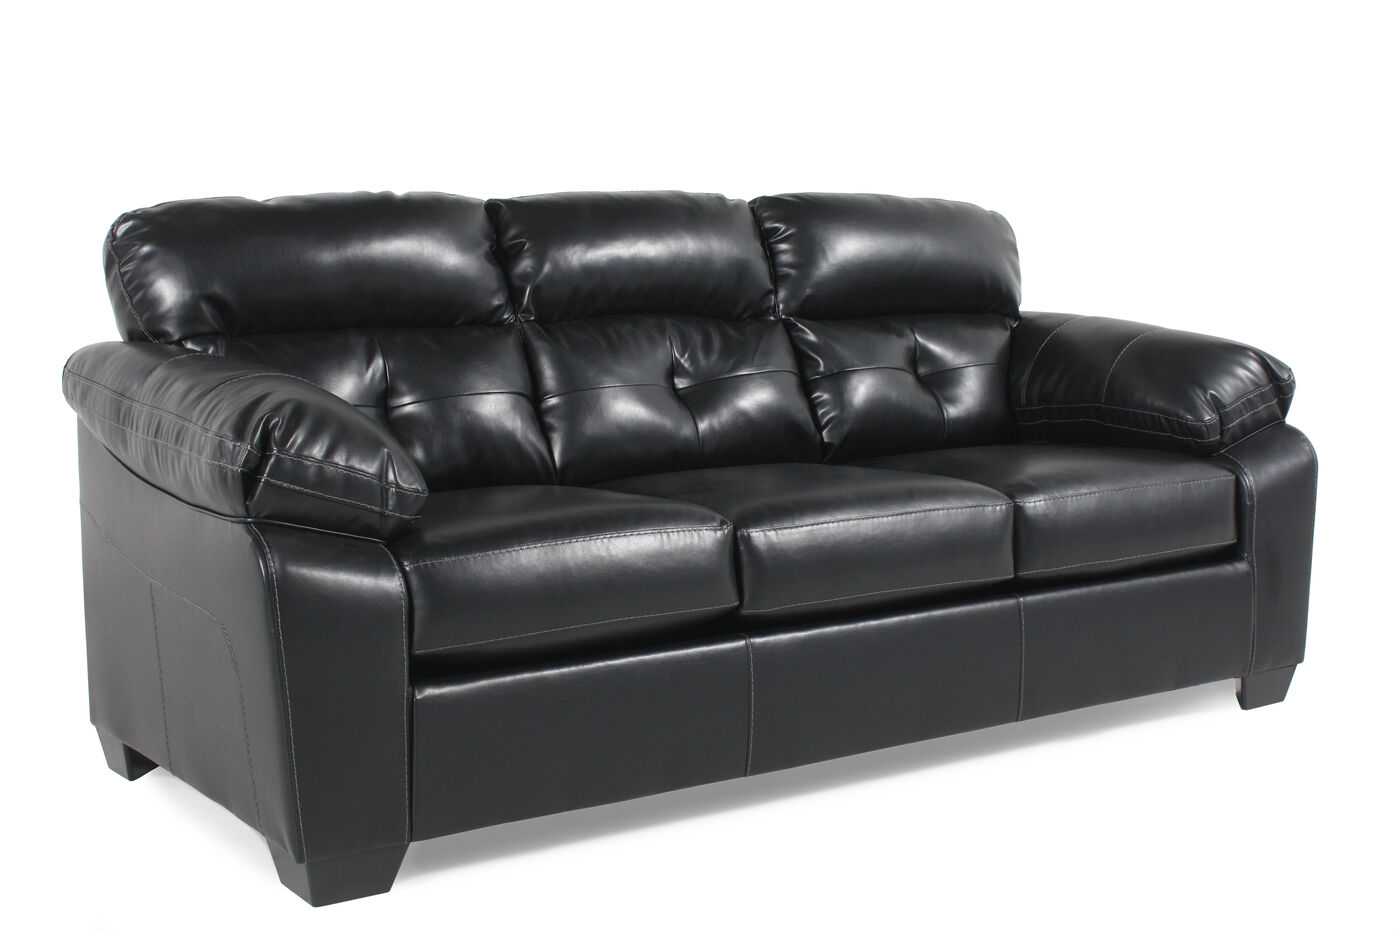 contemporary tufted 87 sofa in black mathis brothers furniture. Black Bedroom Furniture Sets. Home Design Ideas